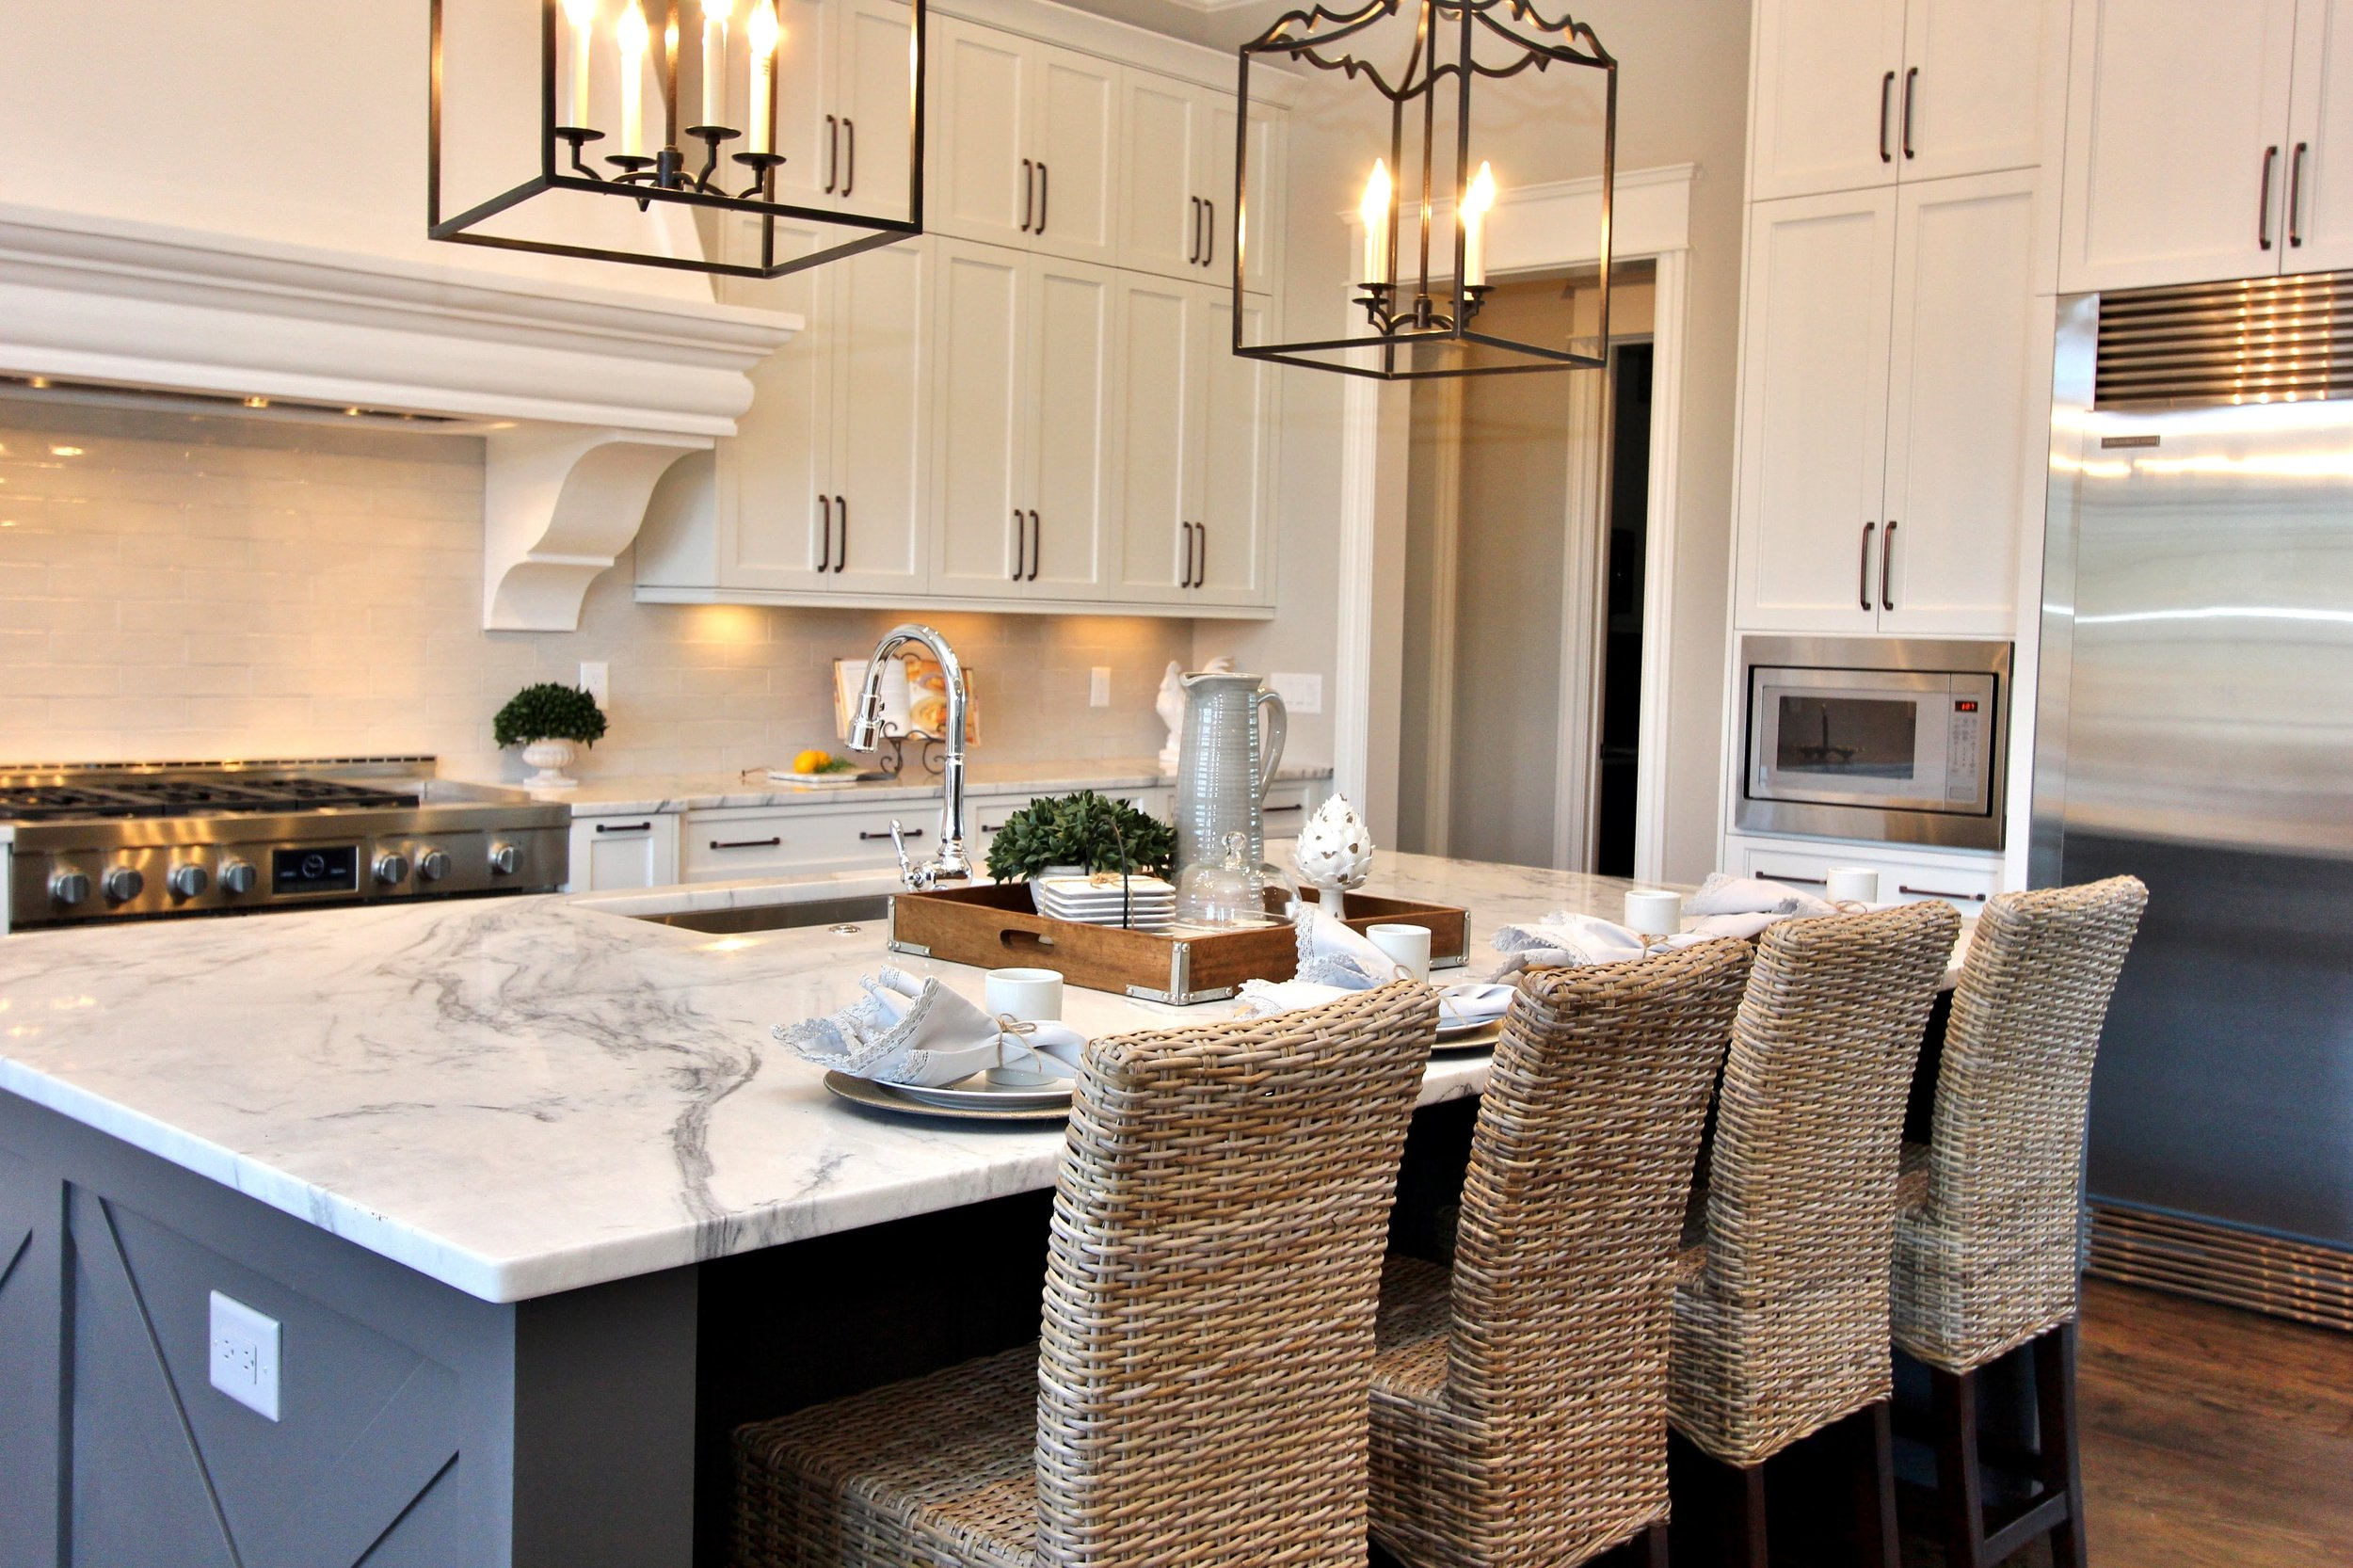 Lot 261_kitchen island (2).JPG